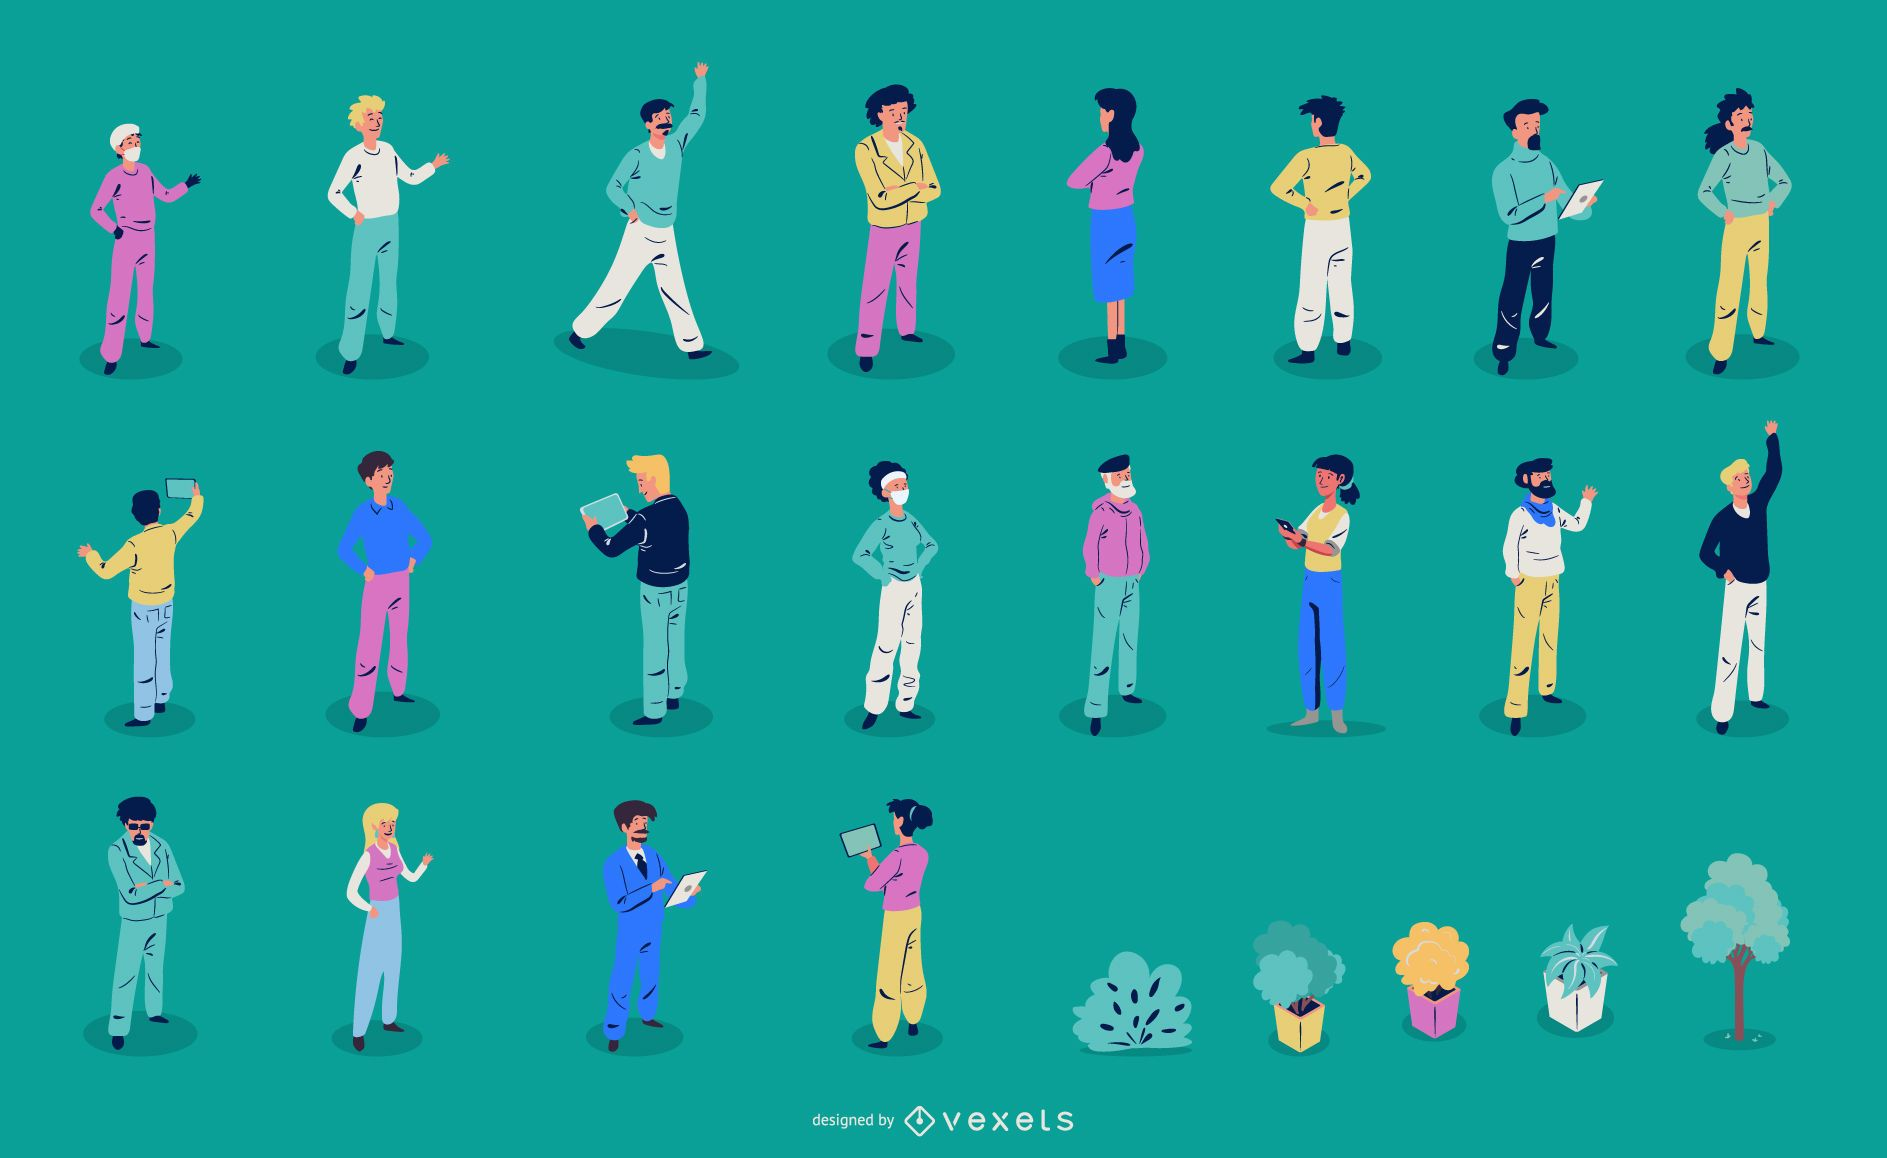 Isometric People Illustration Collection